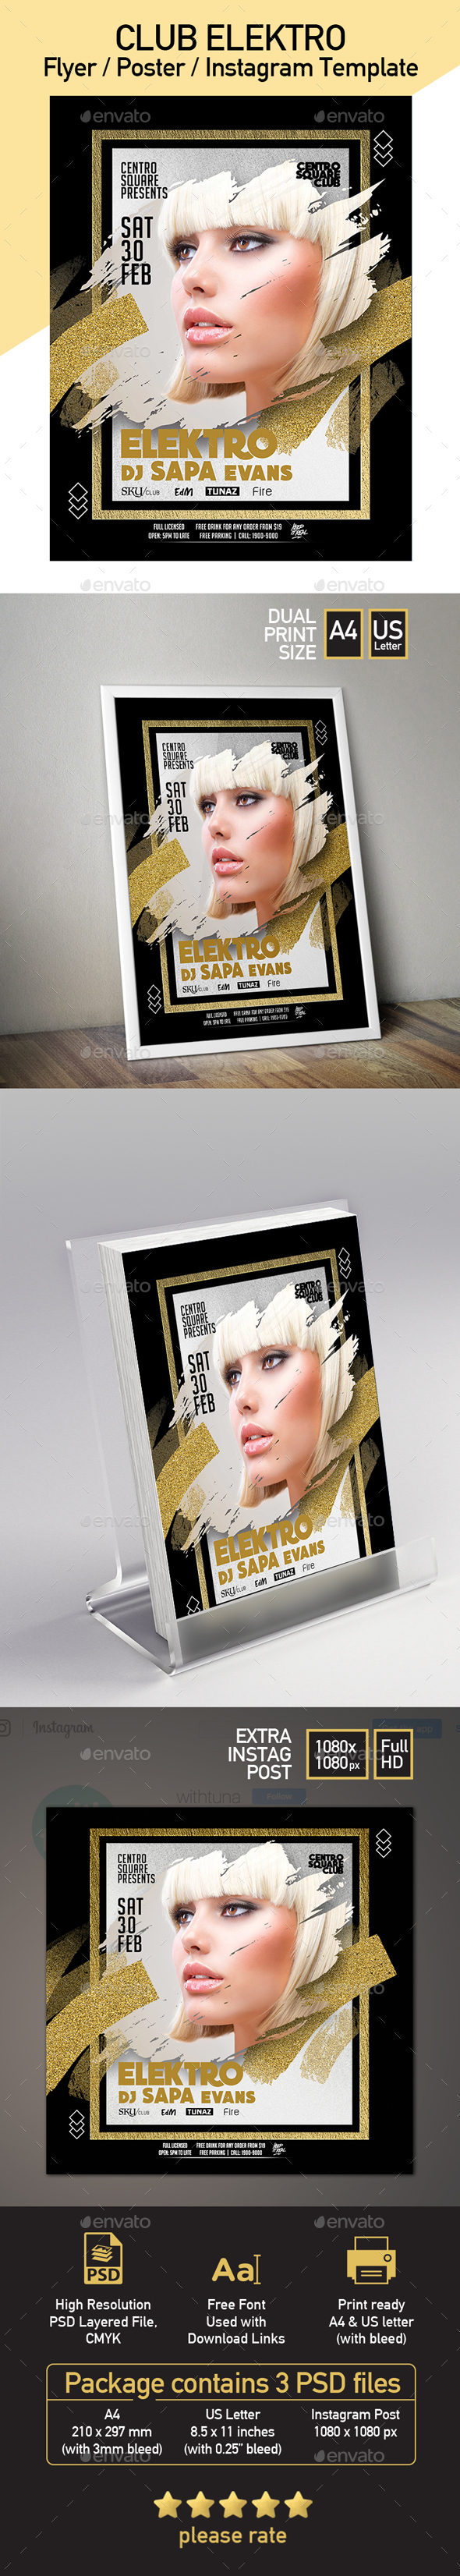 Party Fashion Poster Template - Clubs & Parties Events